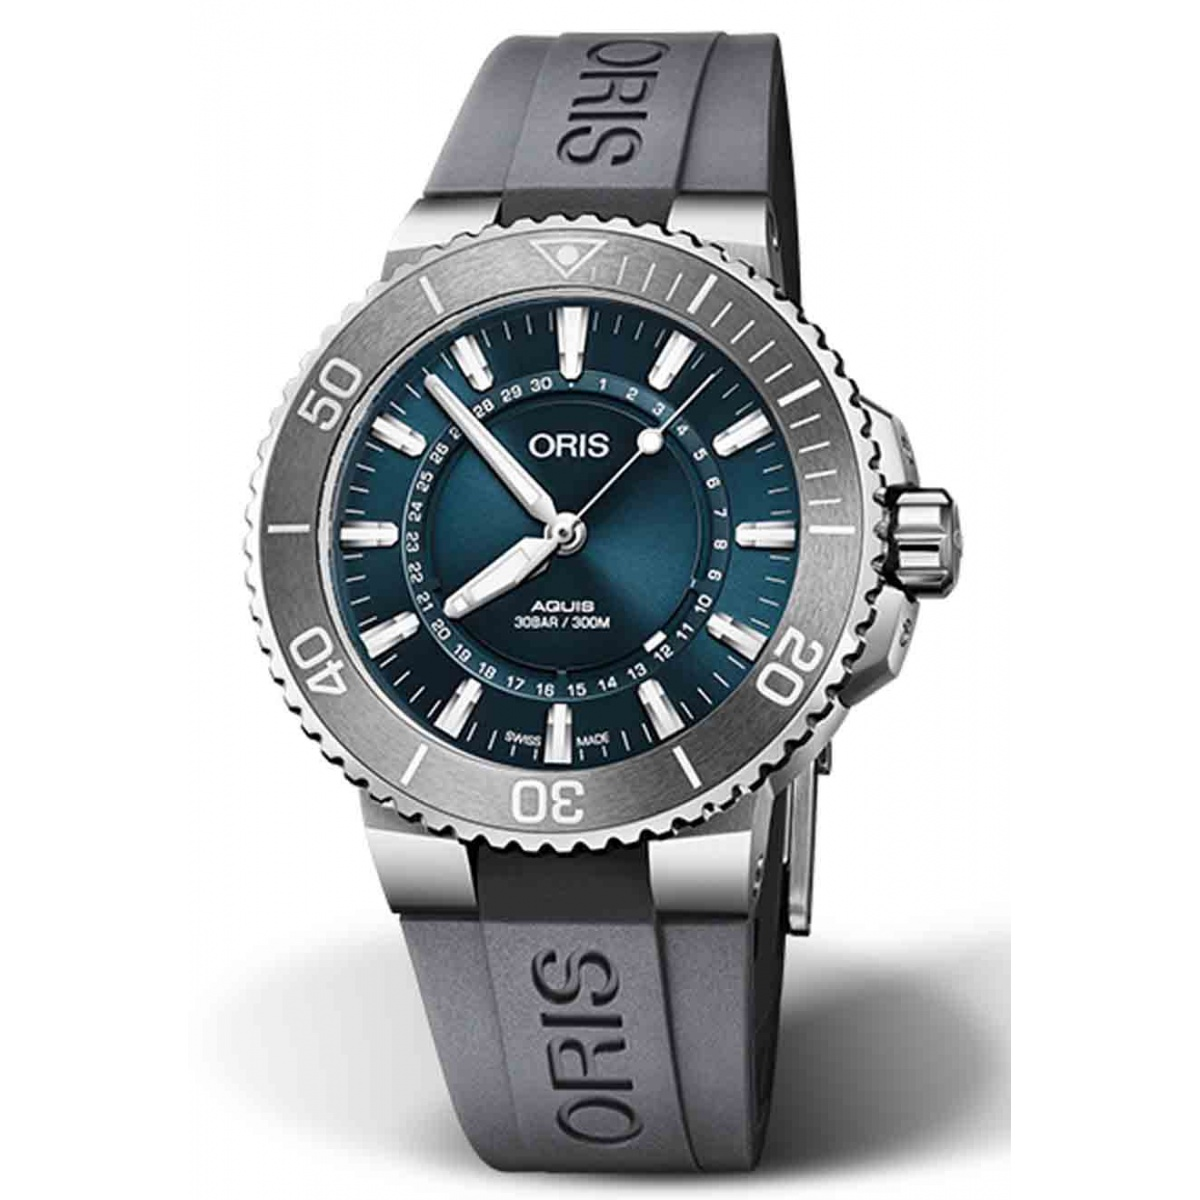 ORIS AQUIS SOURCE OF LIFE LIMITED EDITION 300 M ∅43,5 mm, Esfera azul, Caucho gris